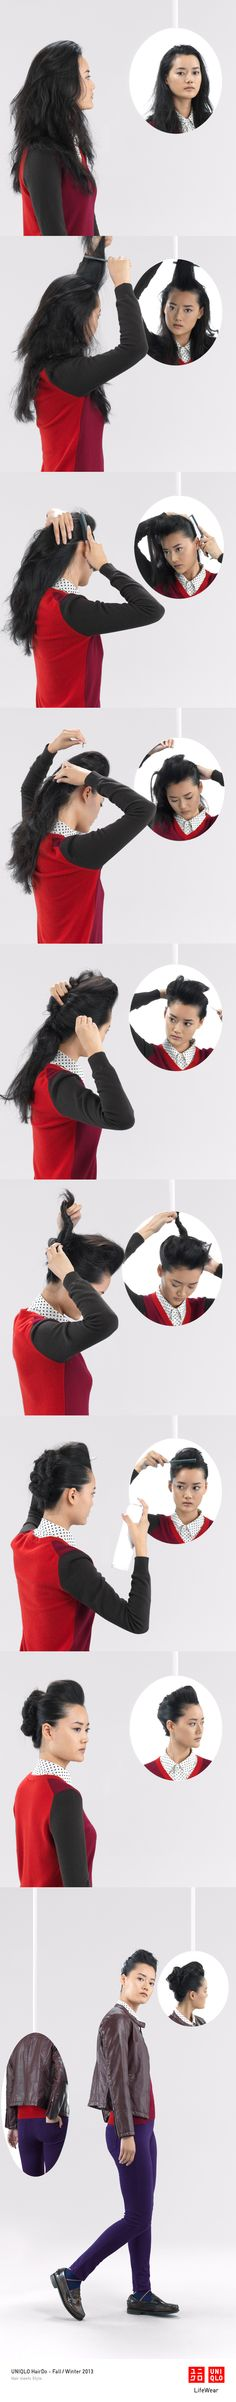 """""""THE LILY QUIF"""" : A leather jacket and ultra stretch jeans are pefrect with this cool hair style.   Click the image for DIY instructions! #UpDo #DIY #Hair #Hairstyle #Uniqlo #FW2013 #UltraStretch #USJ #HairDo"""